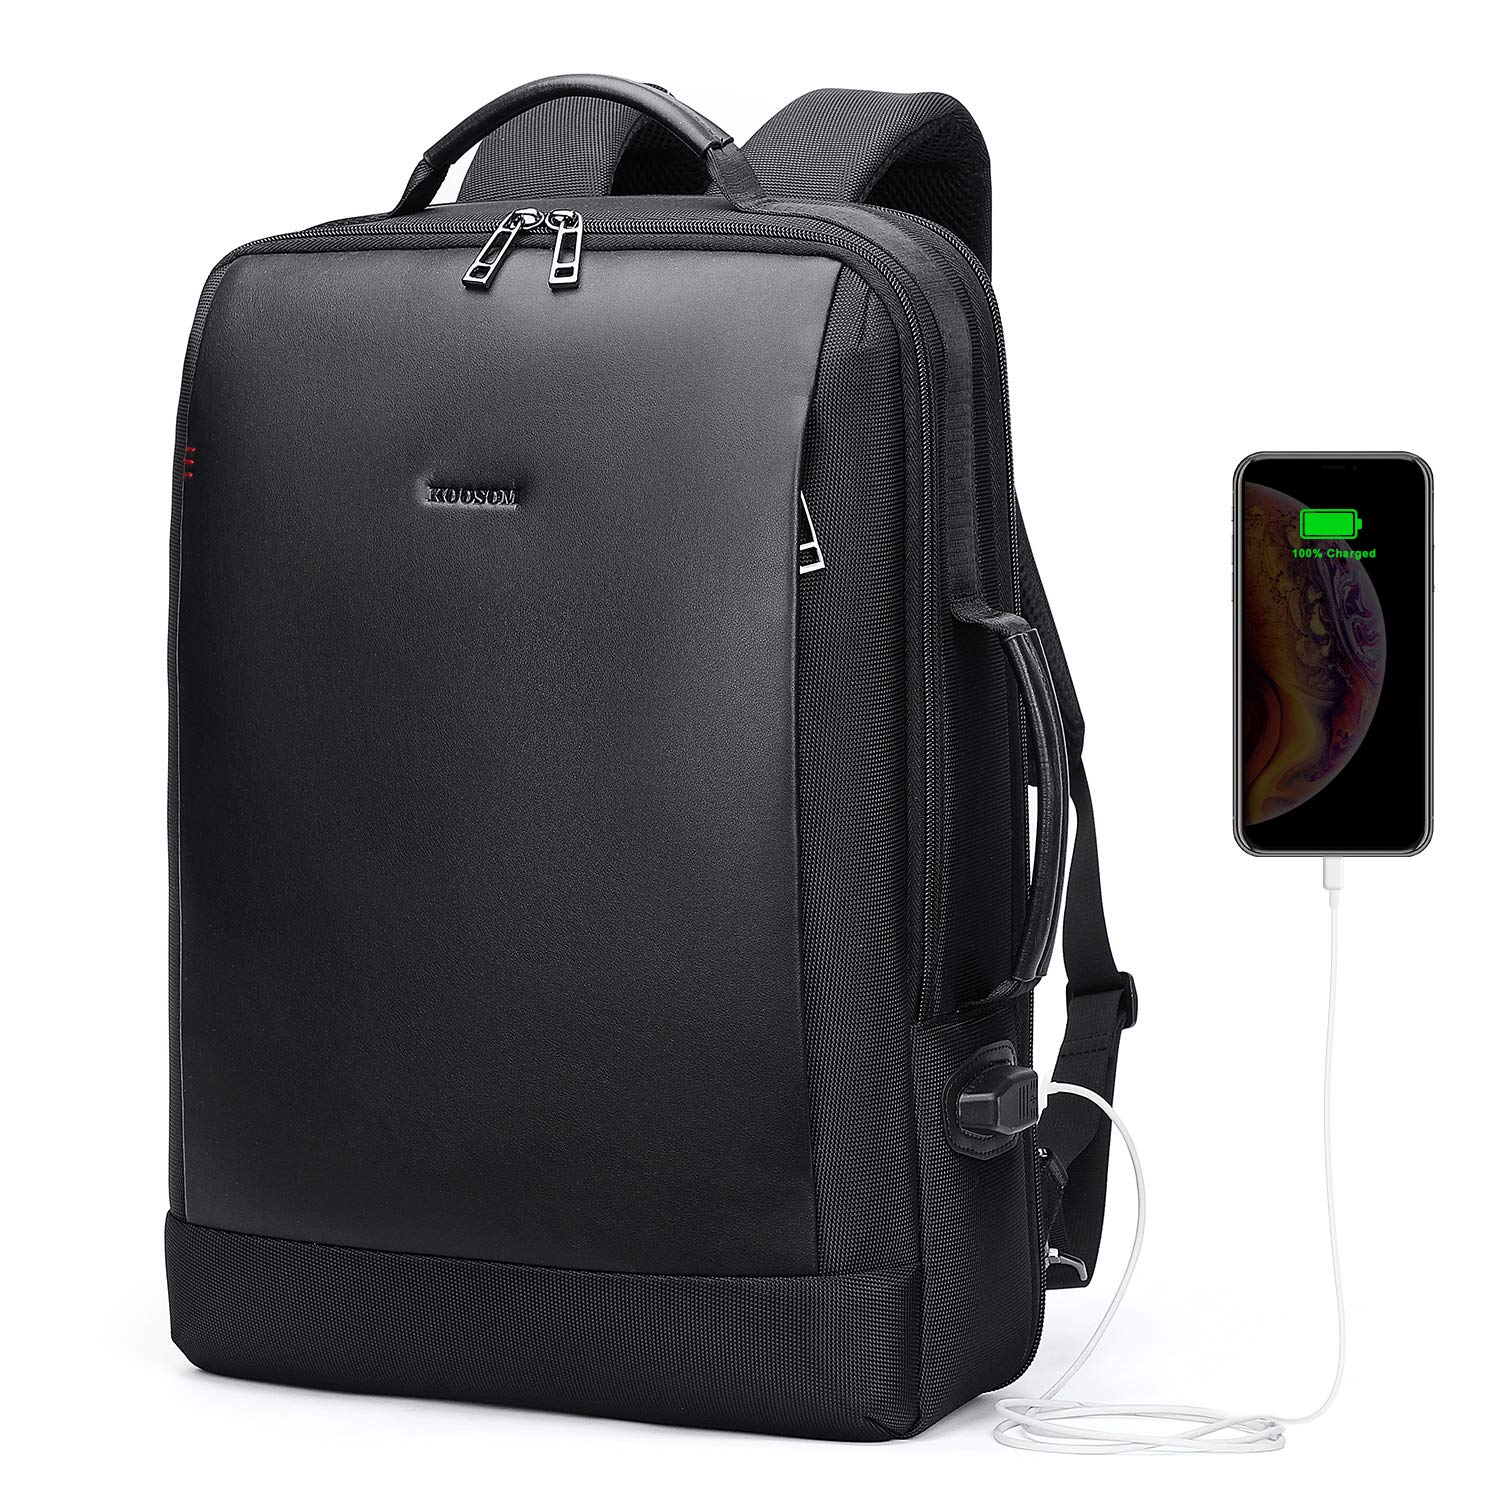 Leather Laptop Backpack for Men Carry On Bag for Travel Work Business School College with USB Charging Port Luggage Strap fit 15.6 inch Computer